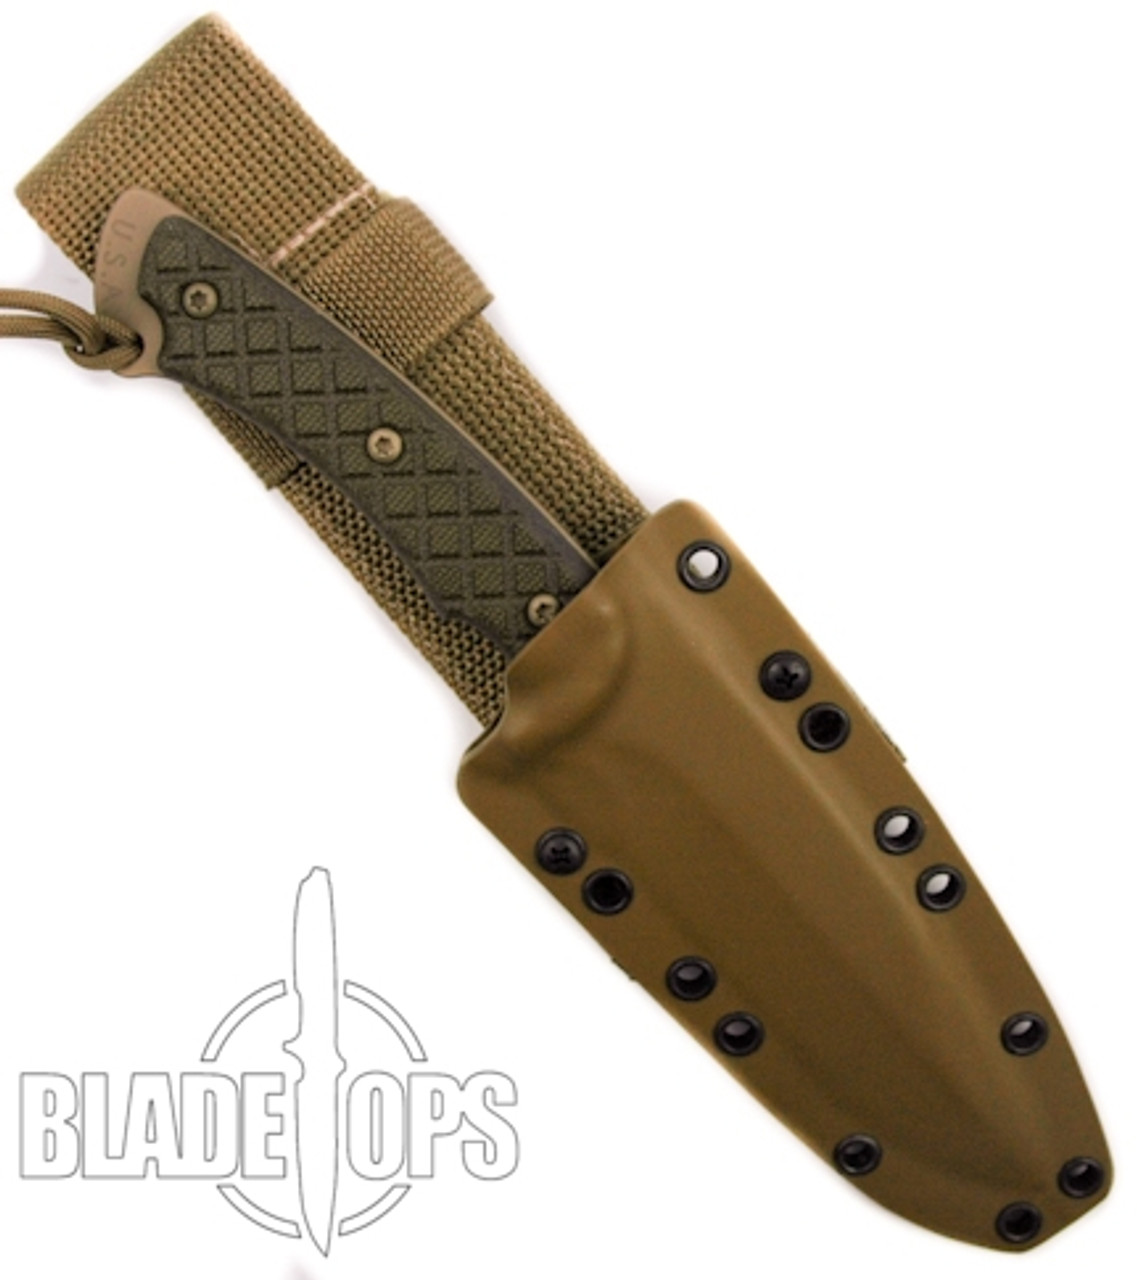 Spartan Blades HORKOS Fixed Blade Knife, Flat Dark Earth Blade, Green Handle, Tan Kydex Sheath